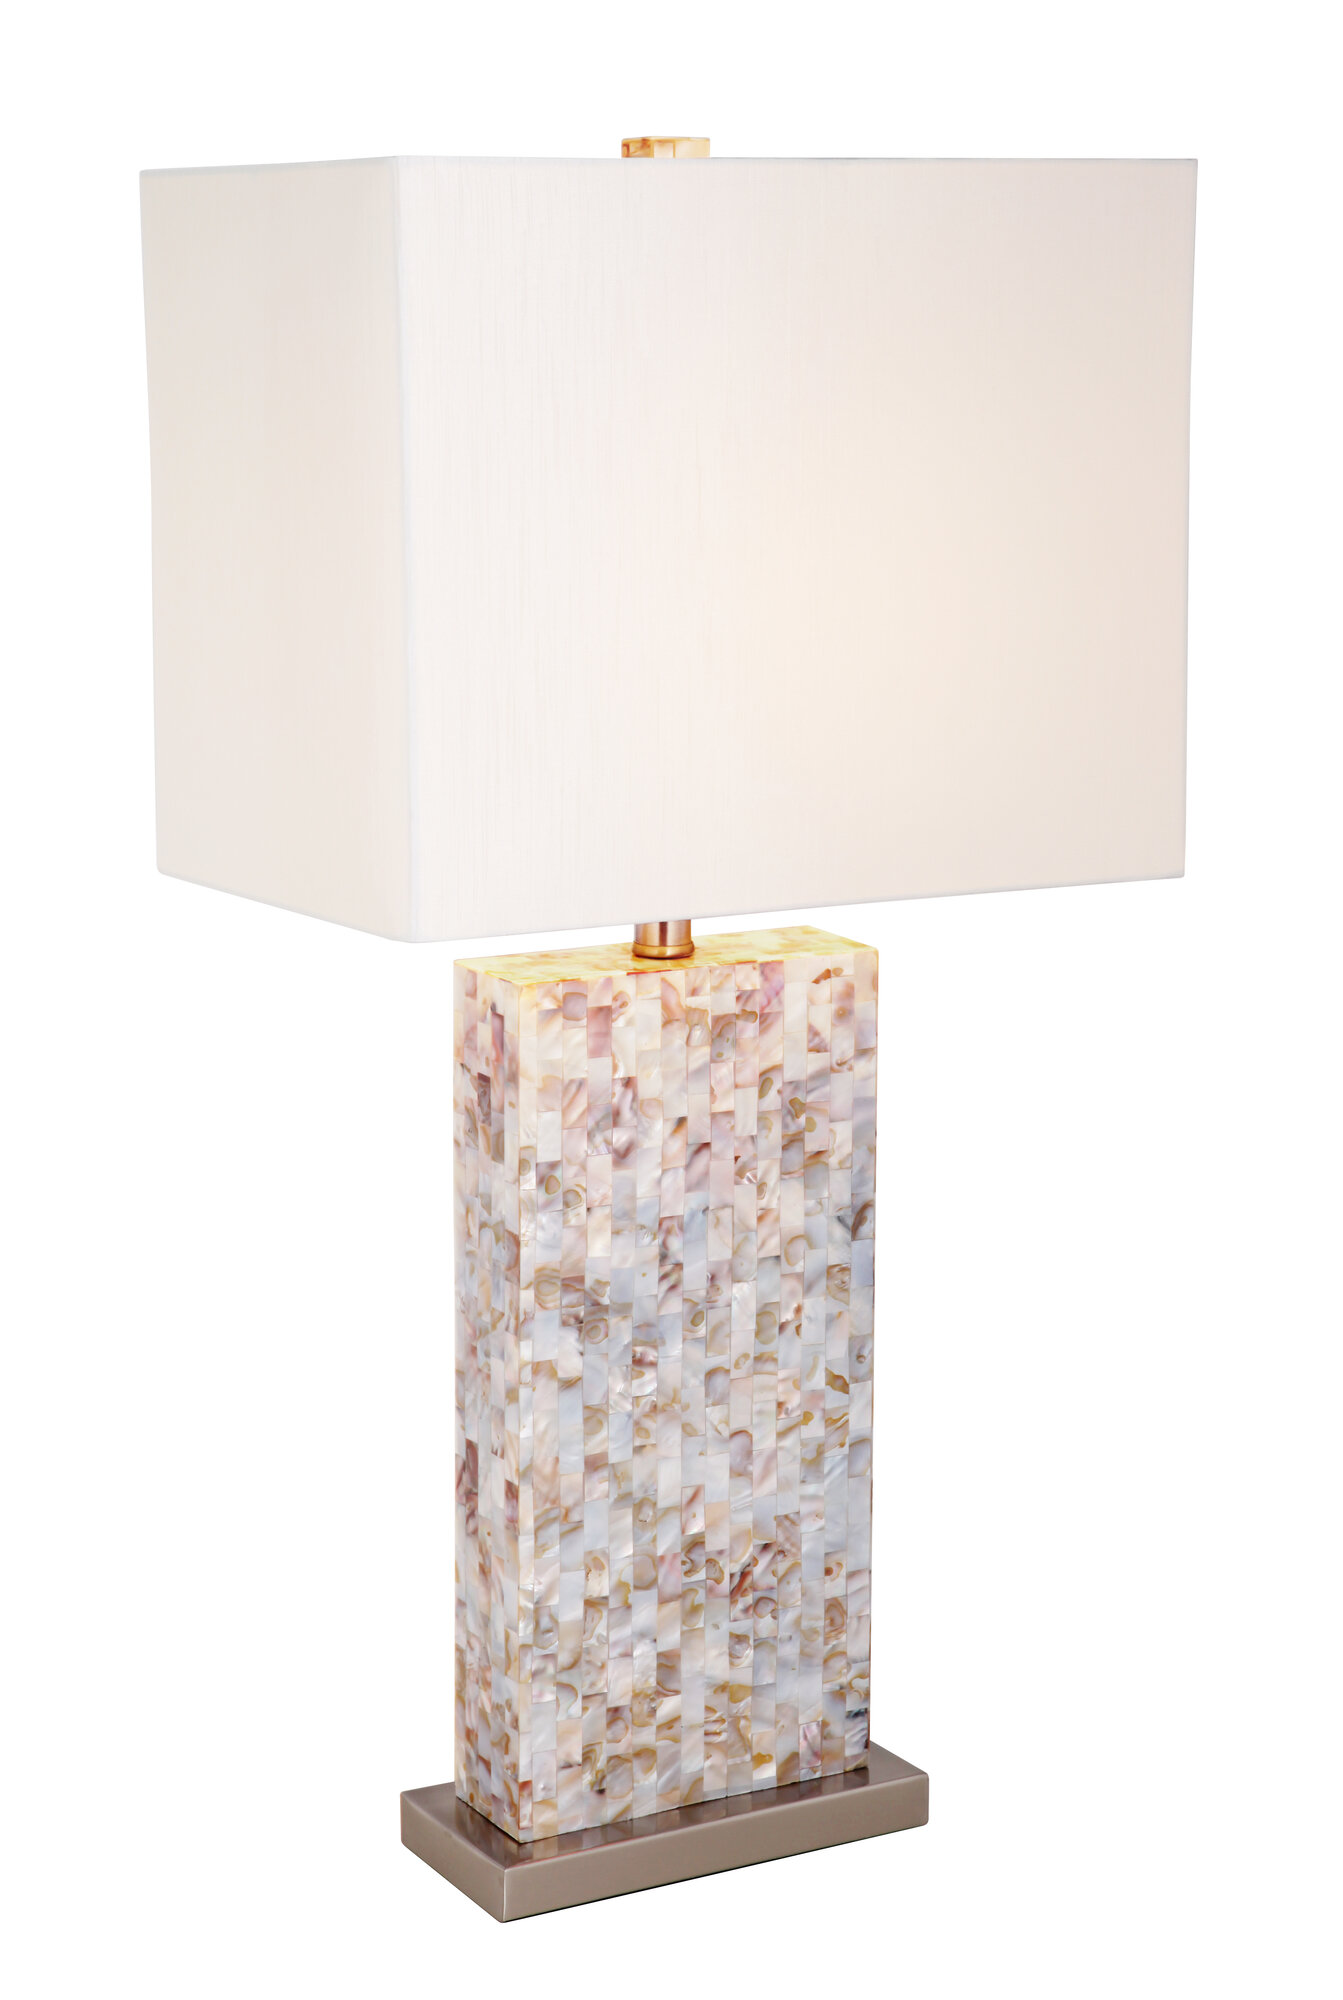 mariana home 30 5 table lamp with rectangular shade ebay. Black Bedroom Furniture Sets. Home Design Ideas